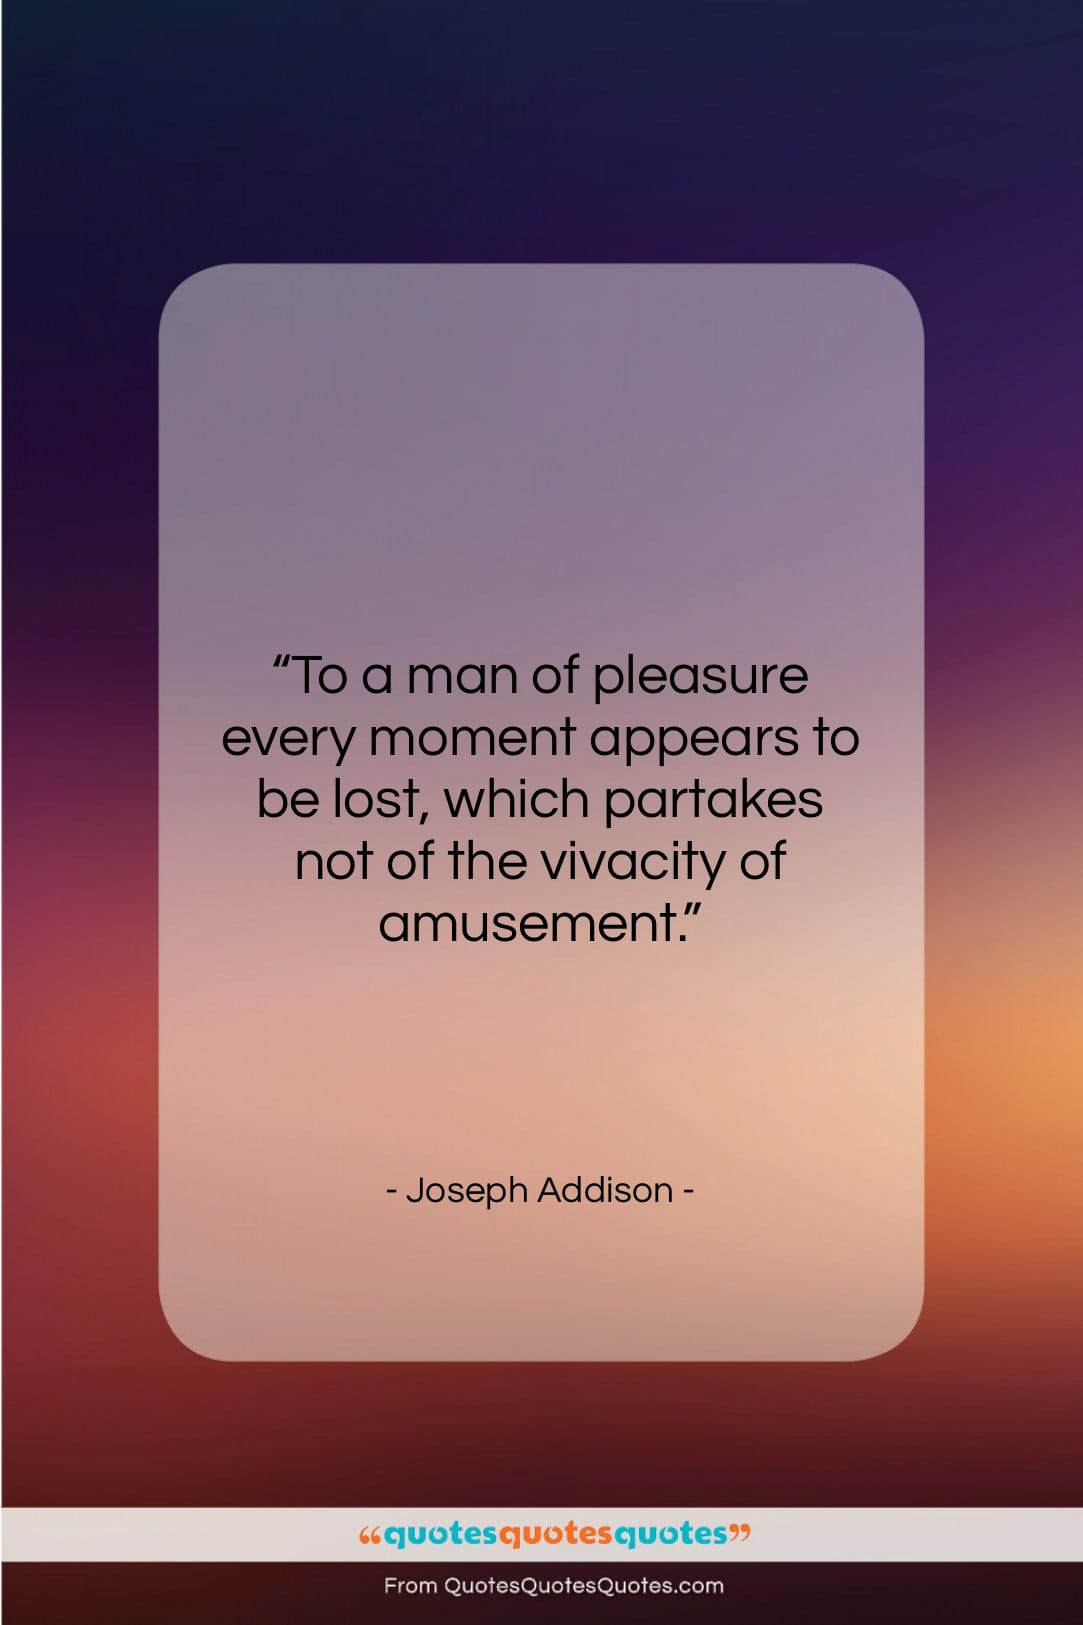 """Joseph Addison quote: """"To a man of pleasure every moment…""""- at QuotesQuotesQuotes.com"""